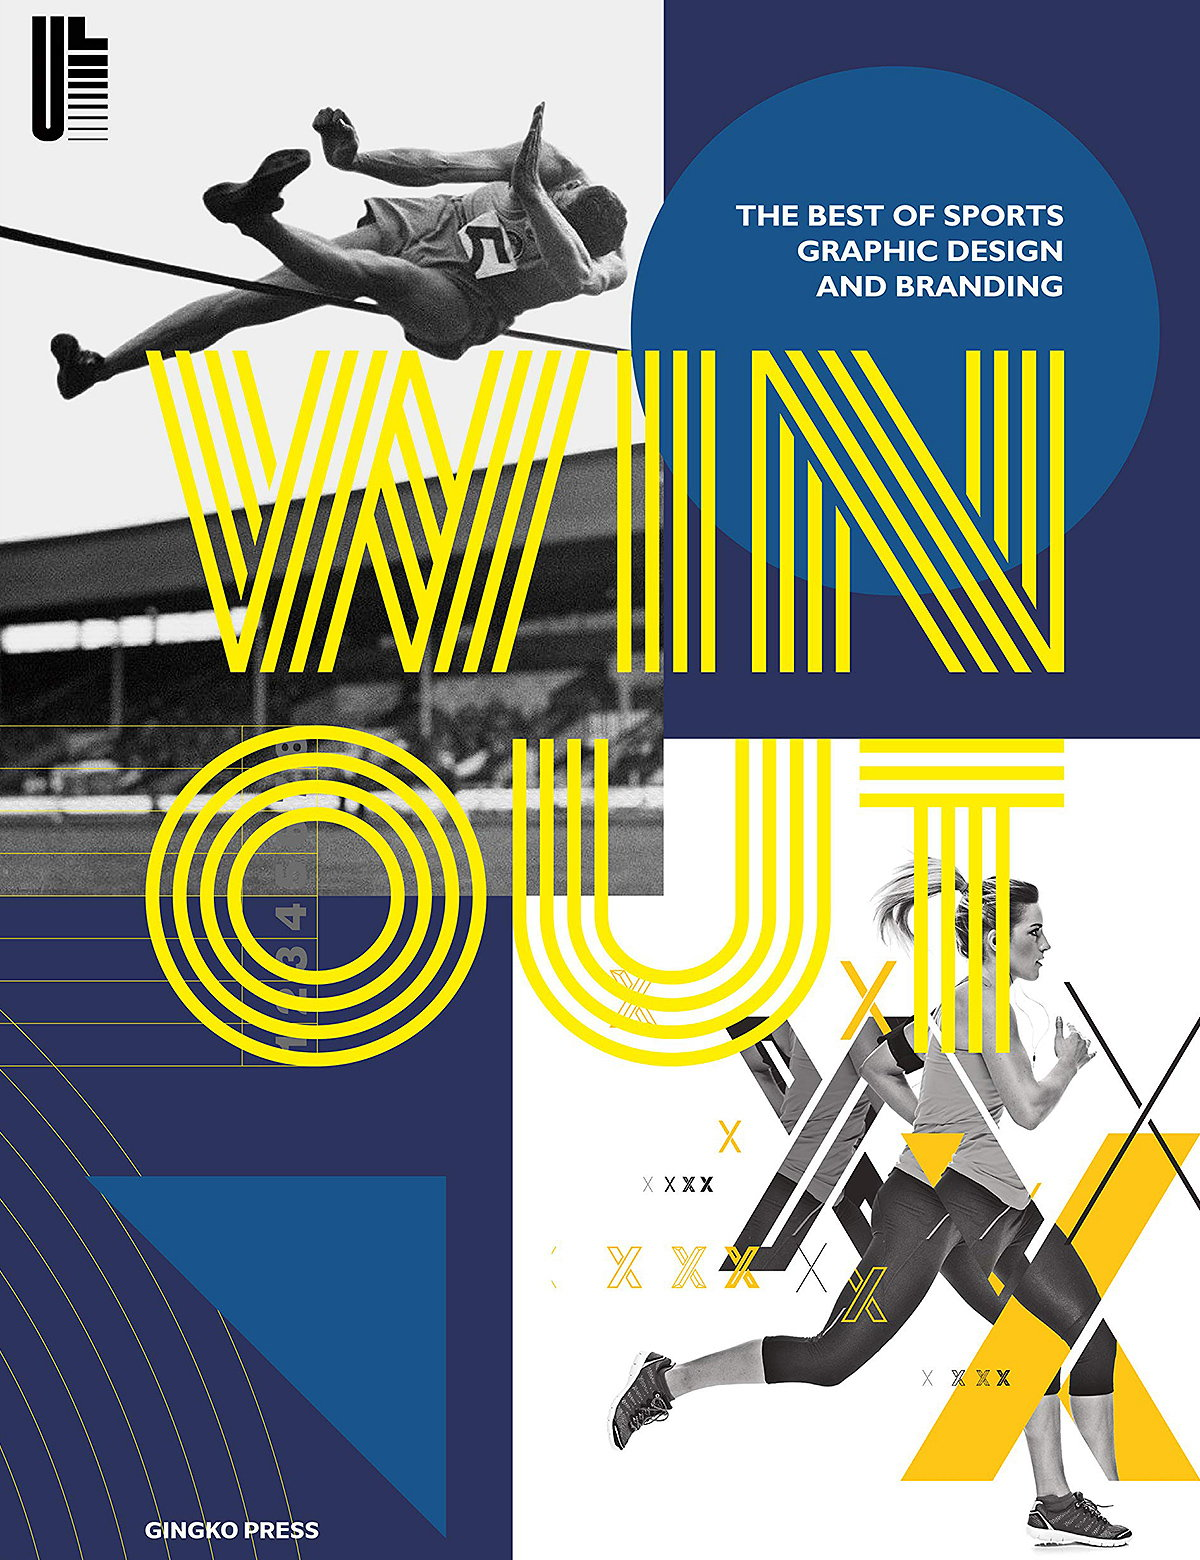 Win Out - The Best of Sports Graphic Design and Branding